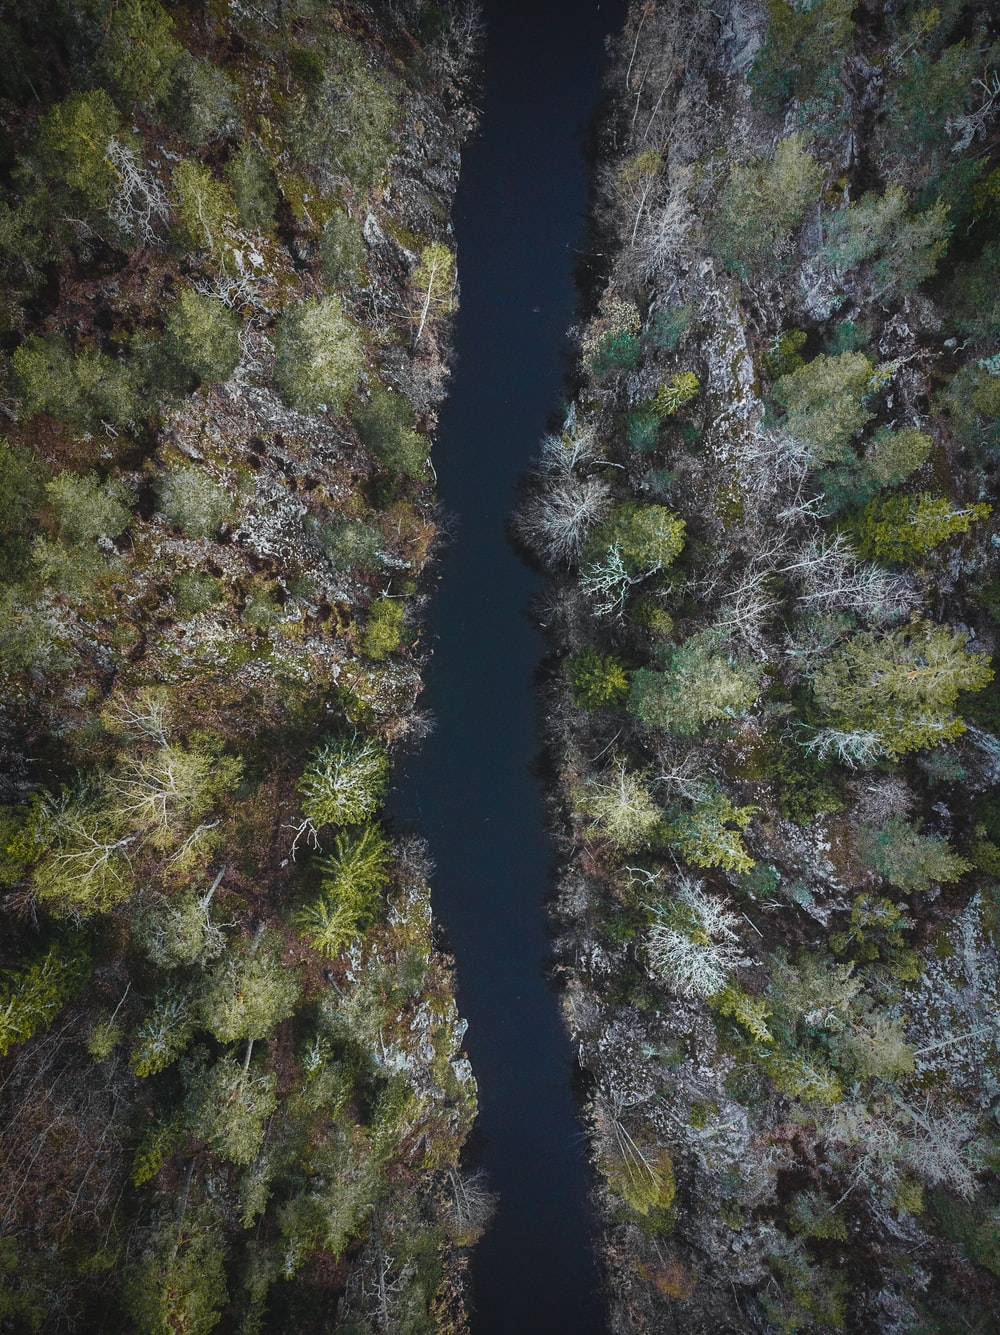 bird's eye view of river and forest